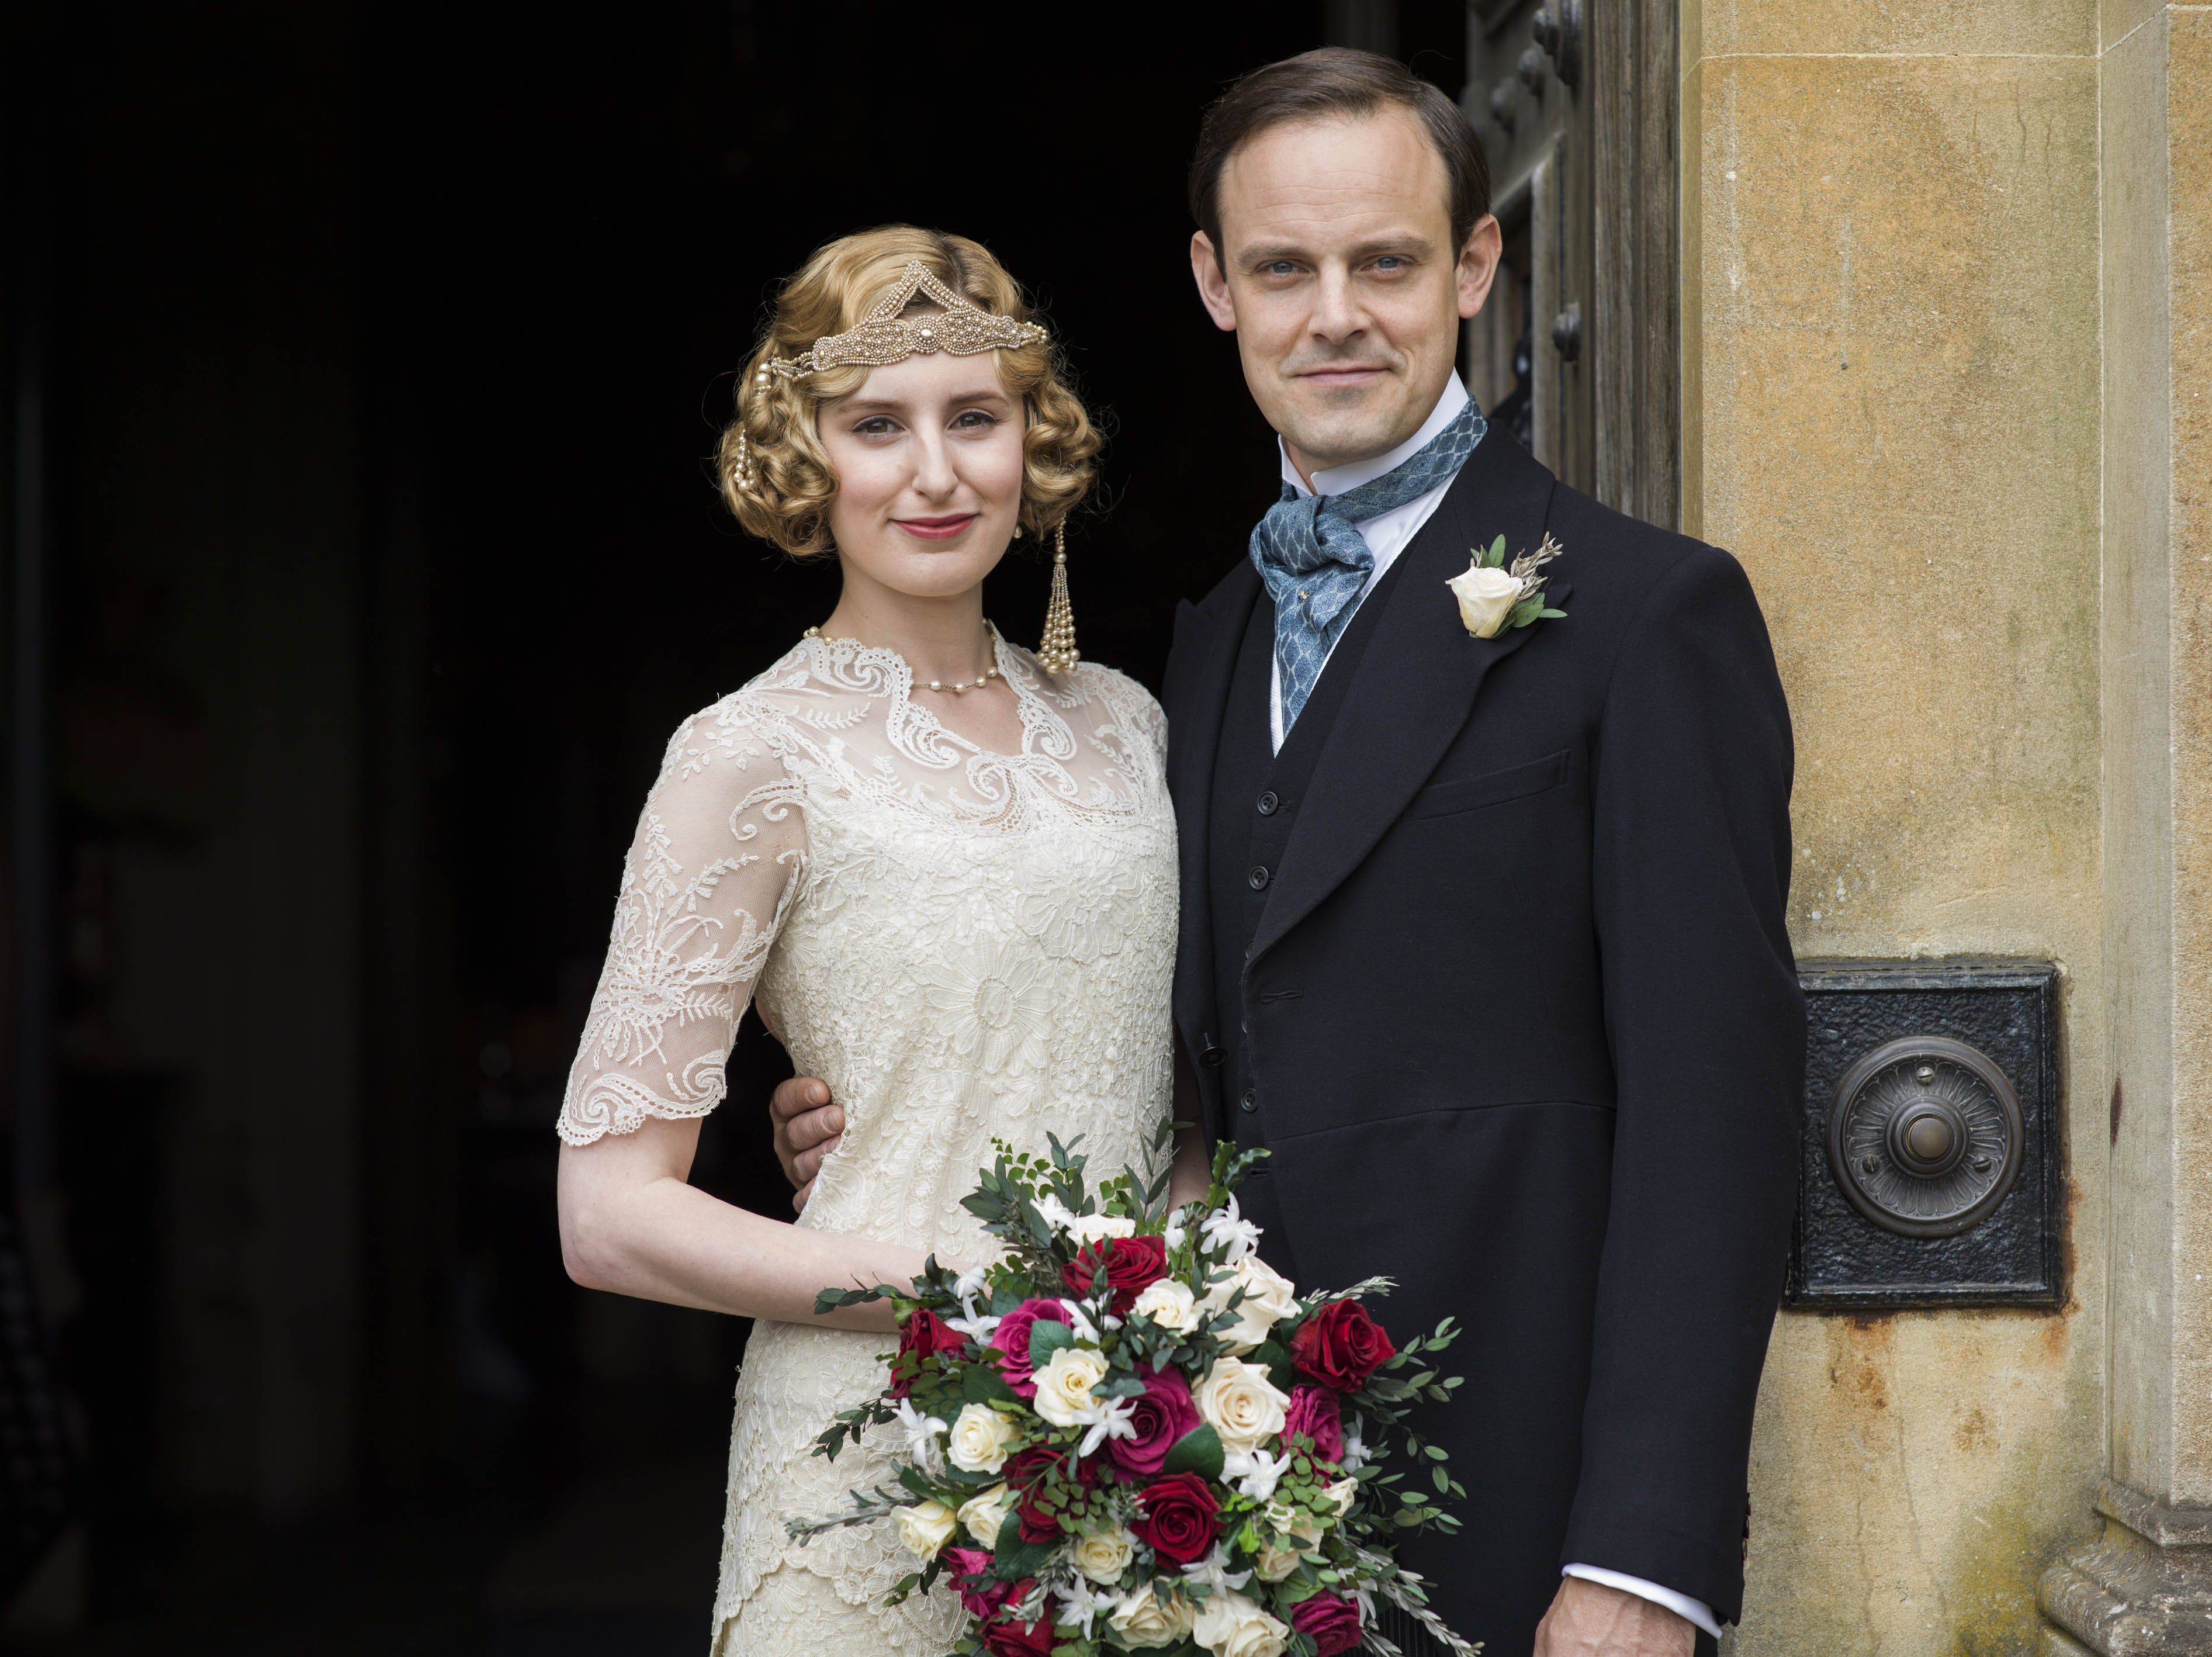 you had me at downton ..lady edith and bertie pelham, downton